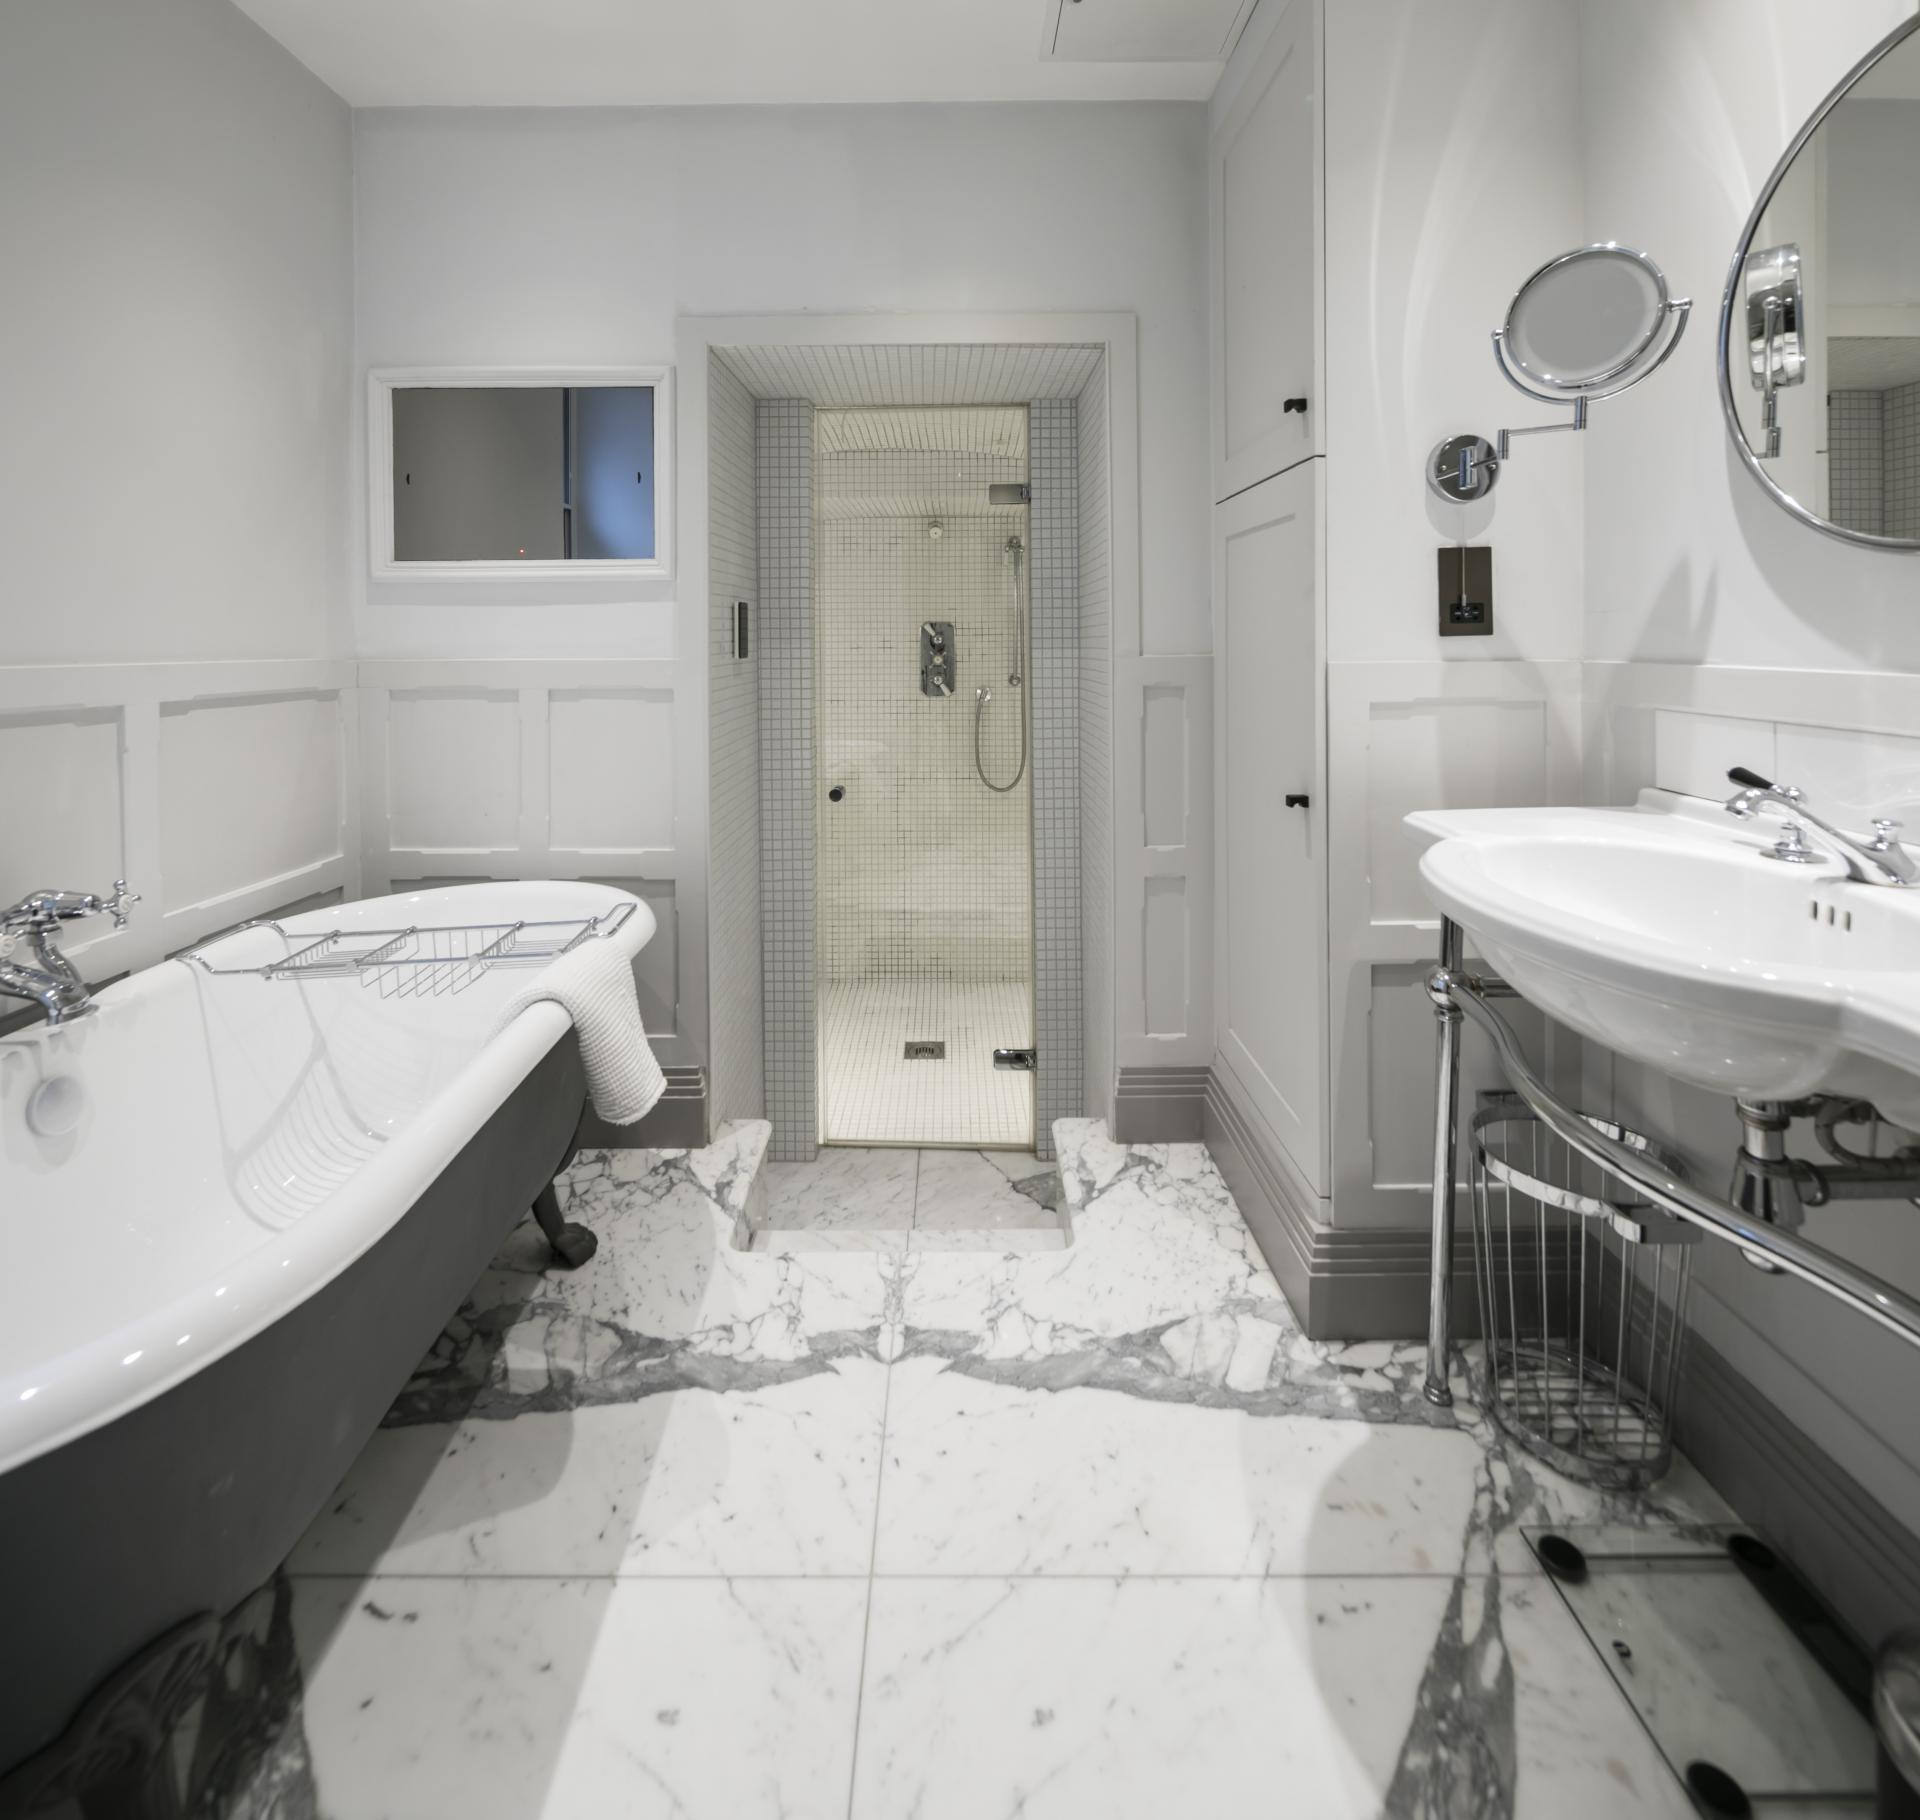 Bathroom at Luxurious Mayfair Apartments, Mayfair, London